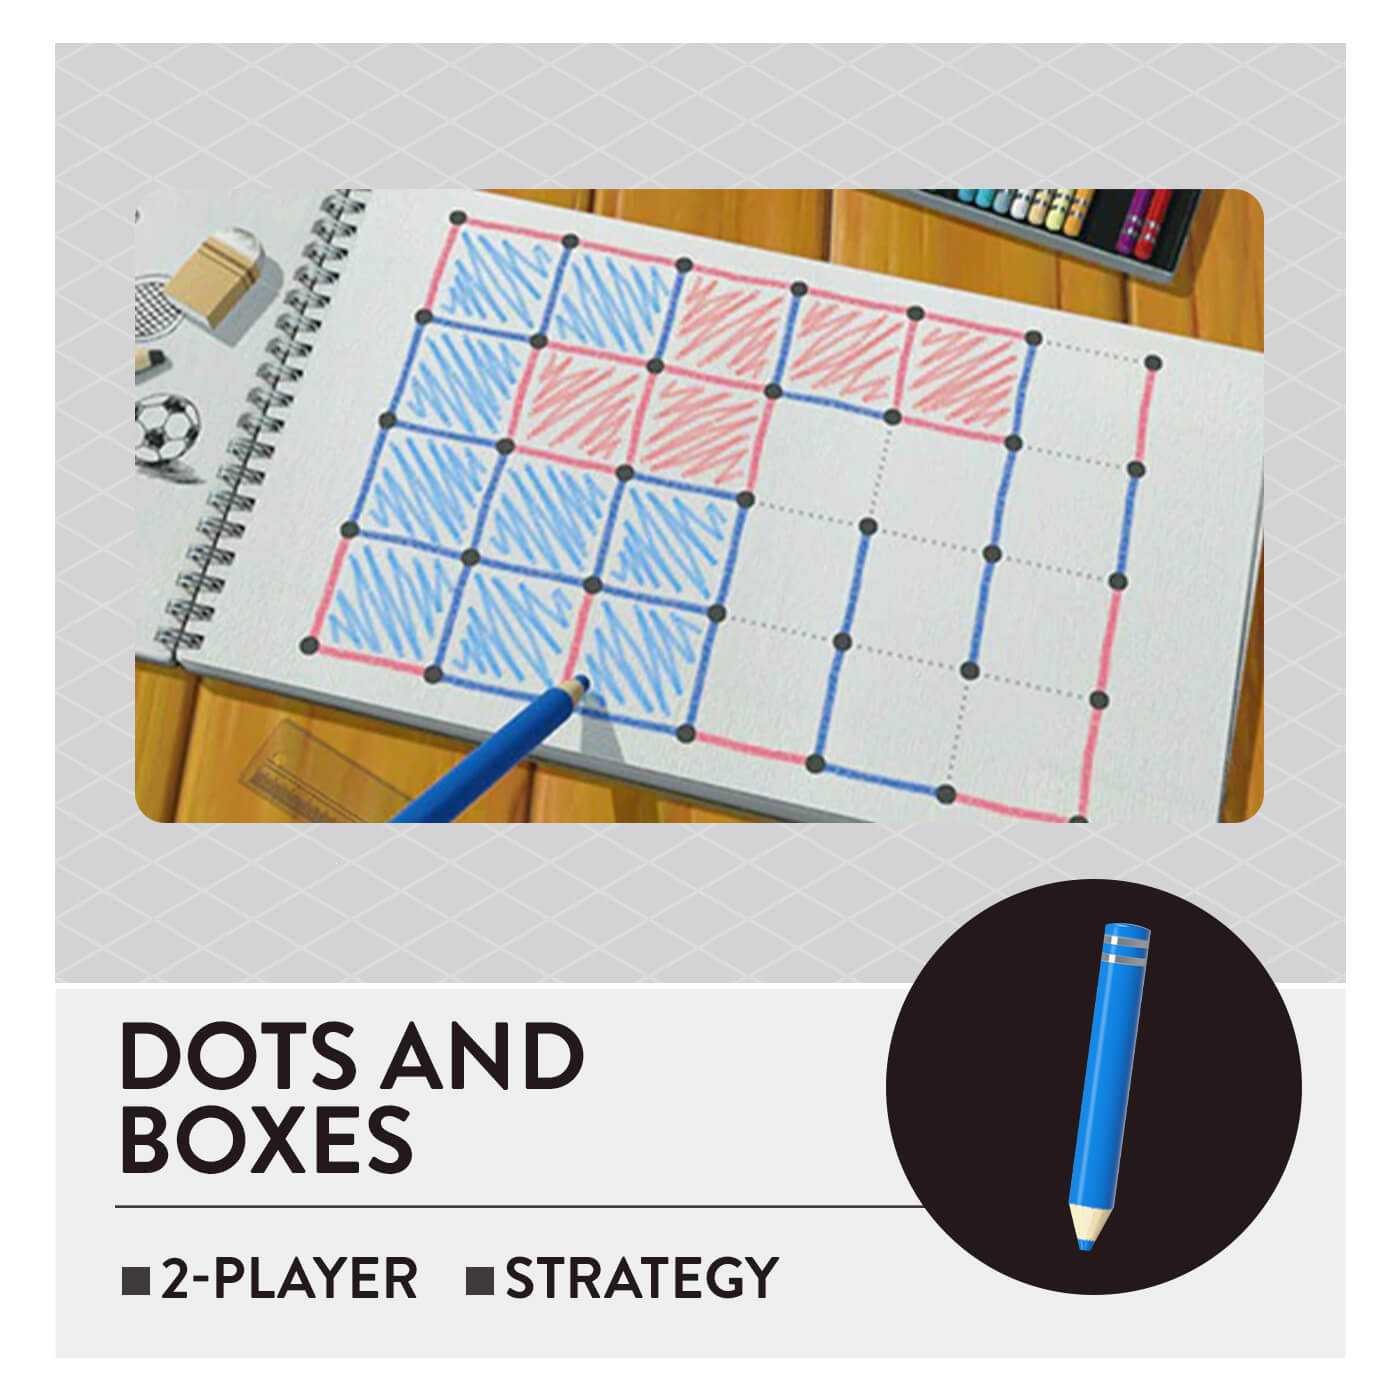 51 Worldwide Games - Dots and Boxes